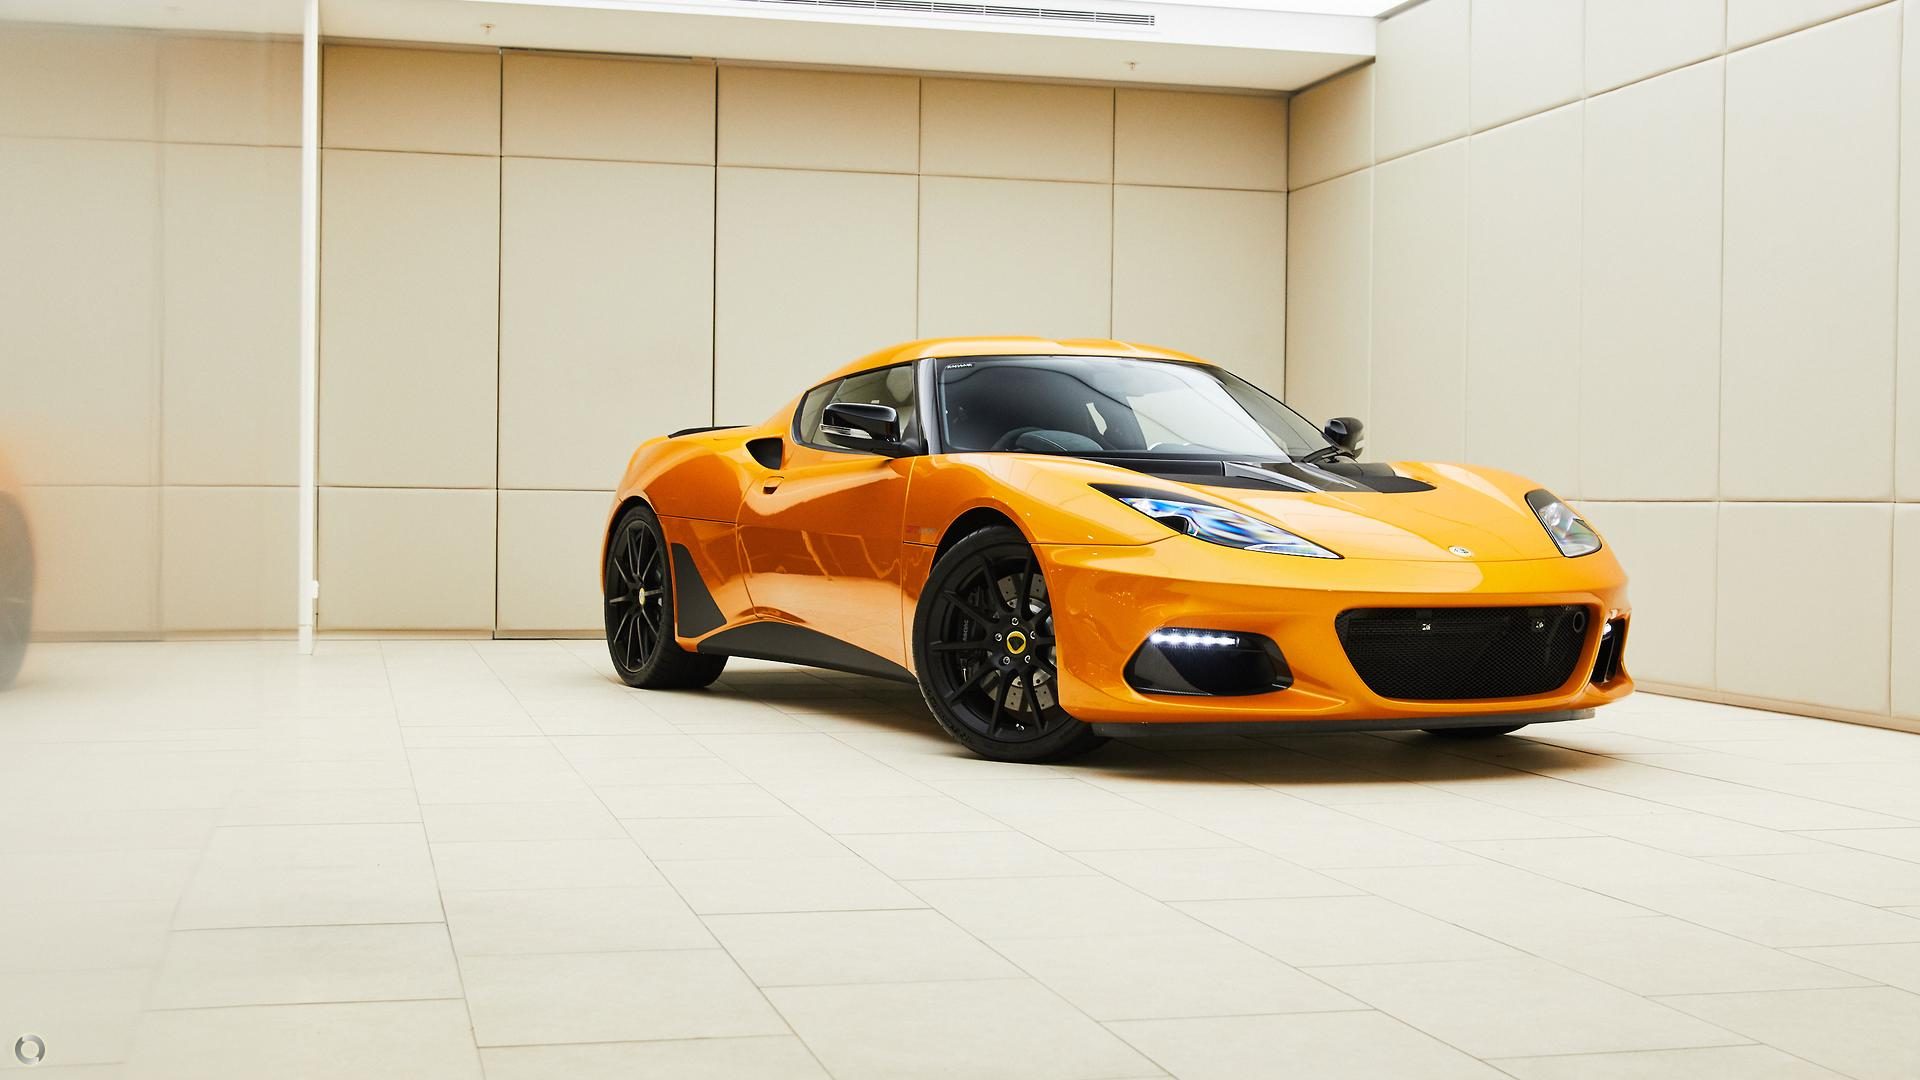 2018 Lotus Evora Type 122